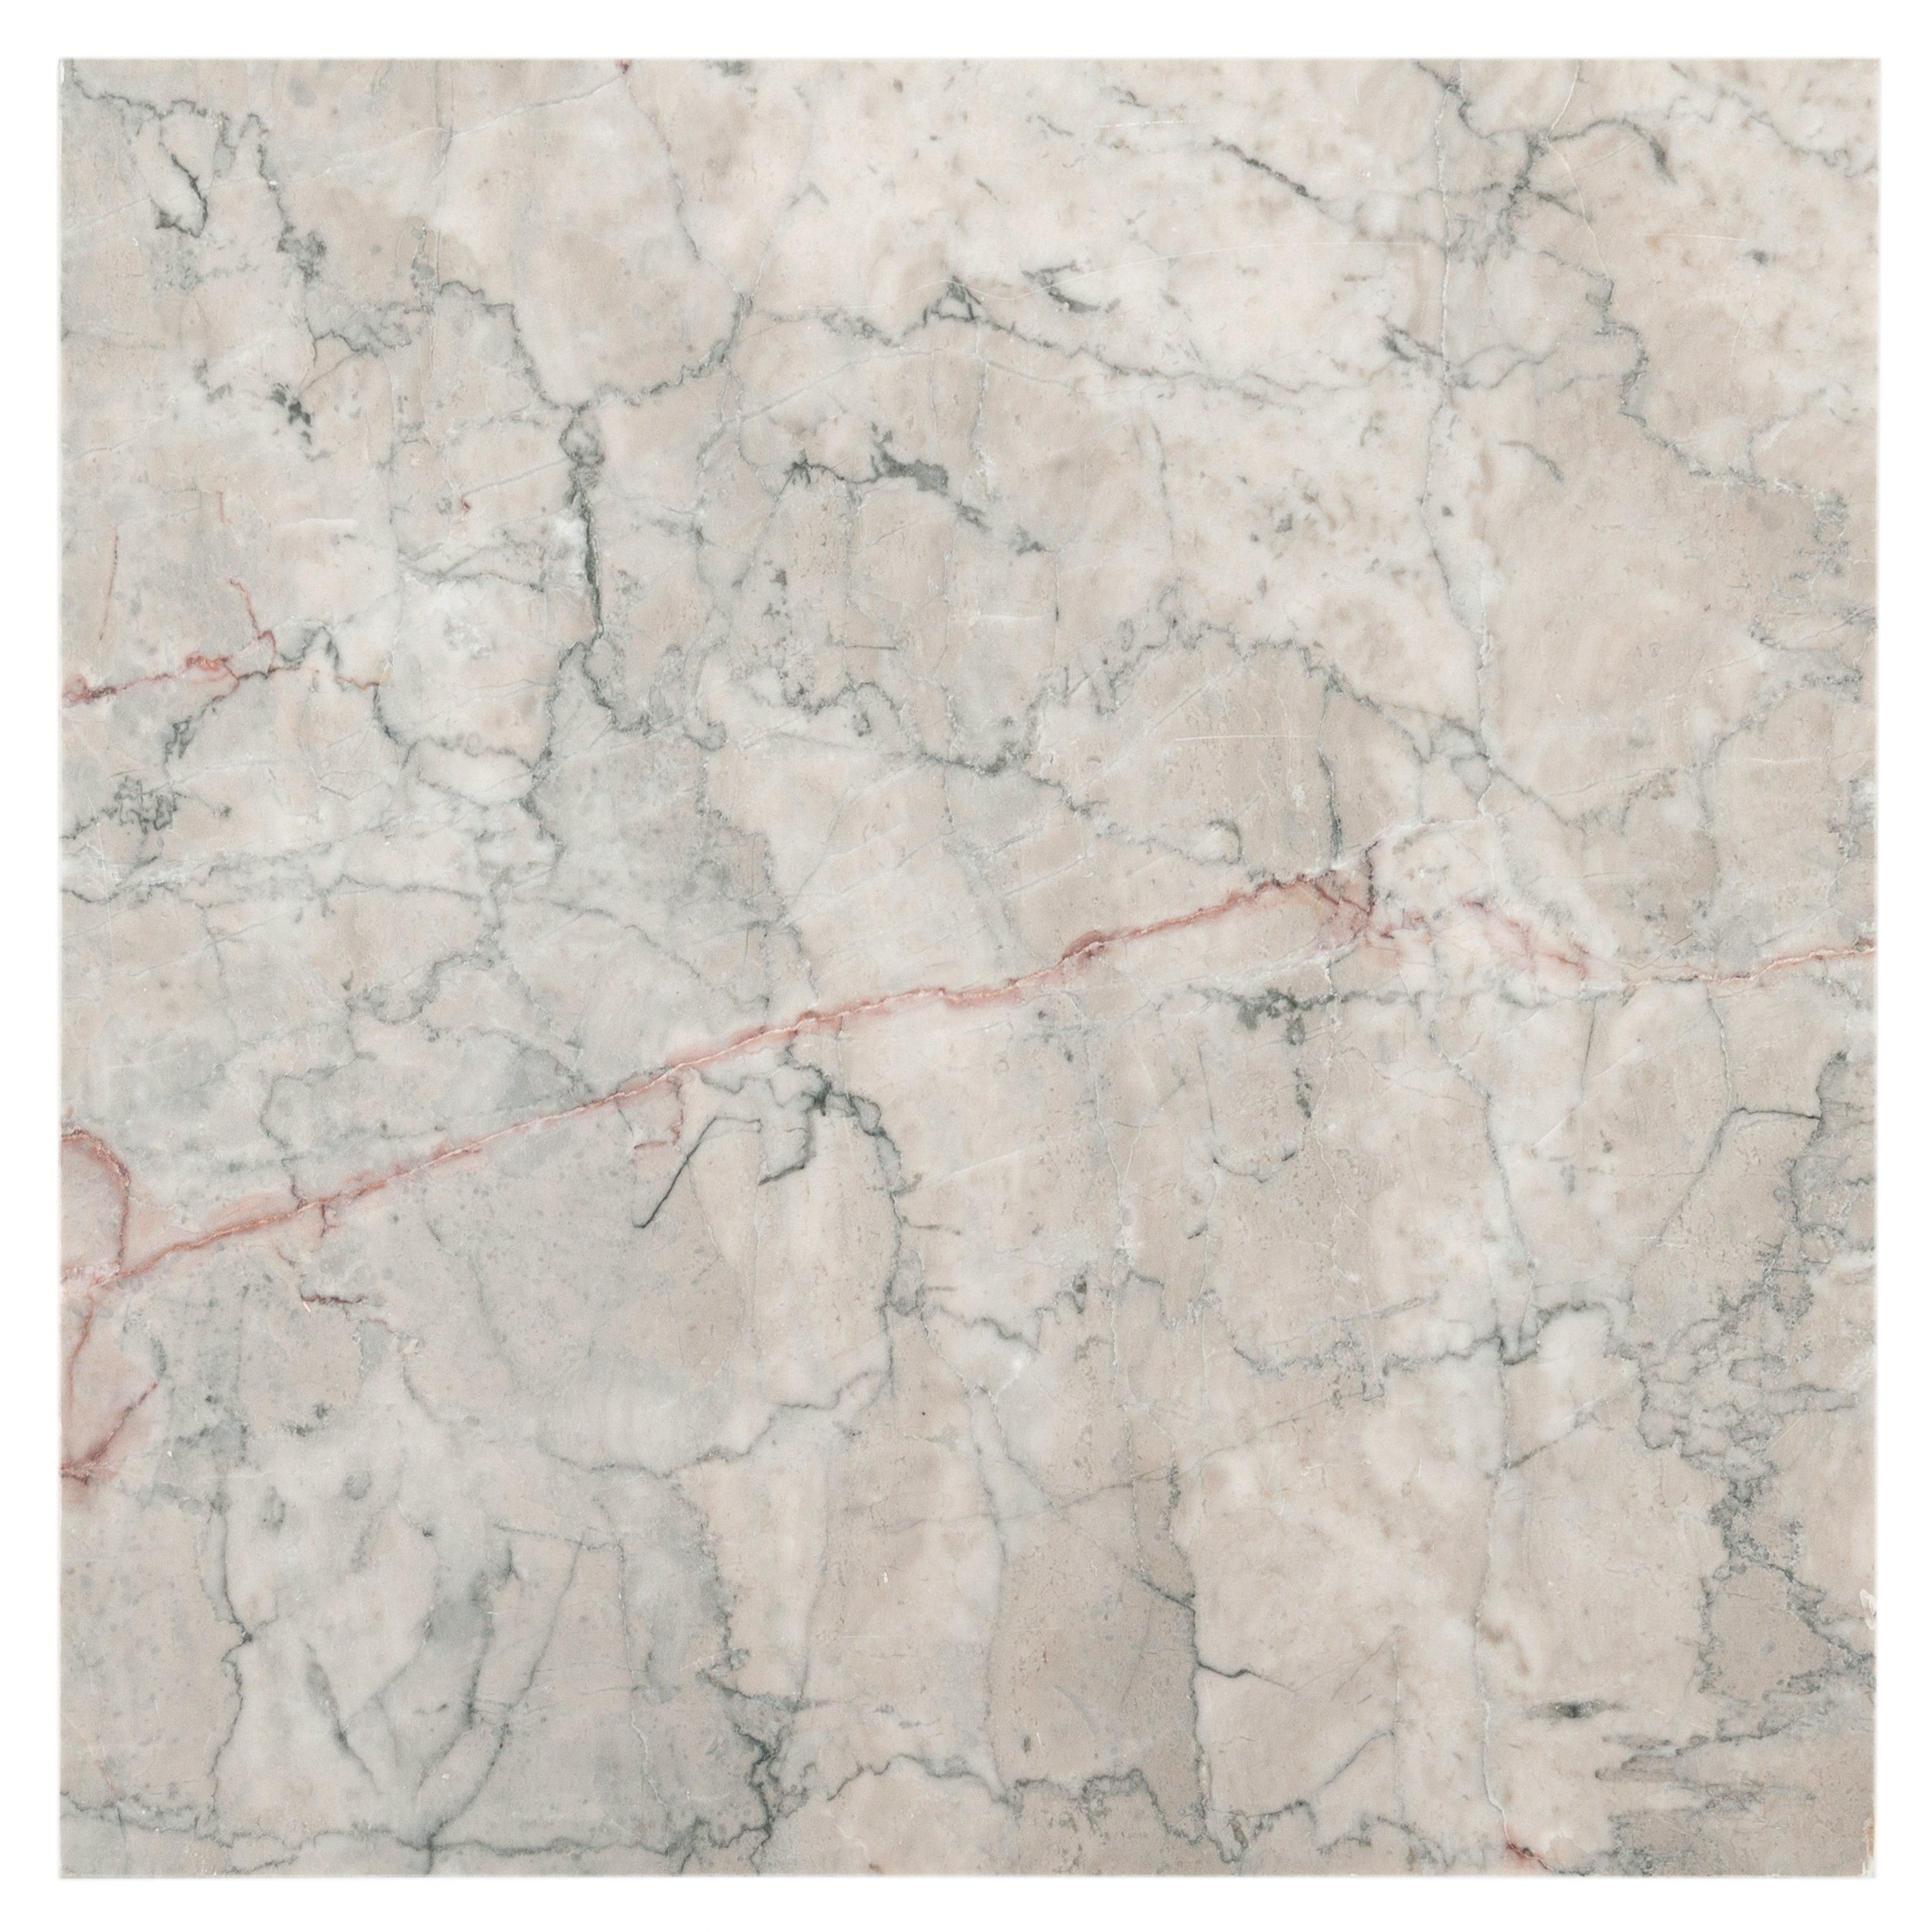 Dynasty Cream Marble Tile Floor Decor In 2020 Cream Marble Tiles White Marble Tiles Marble Tile